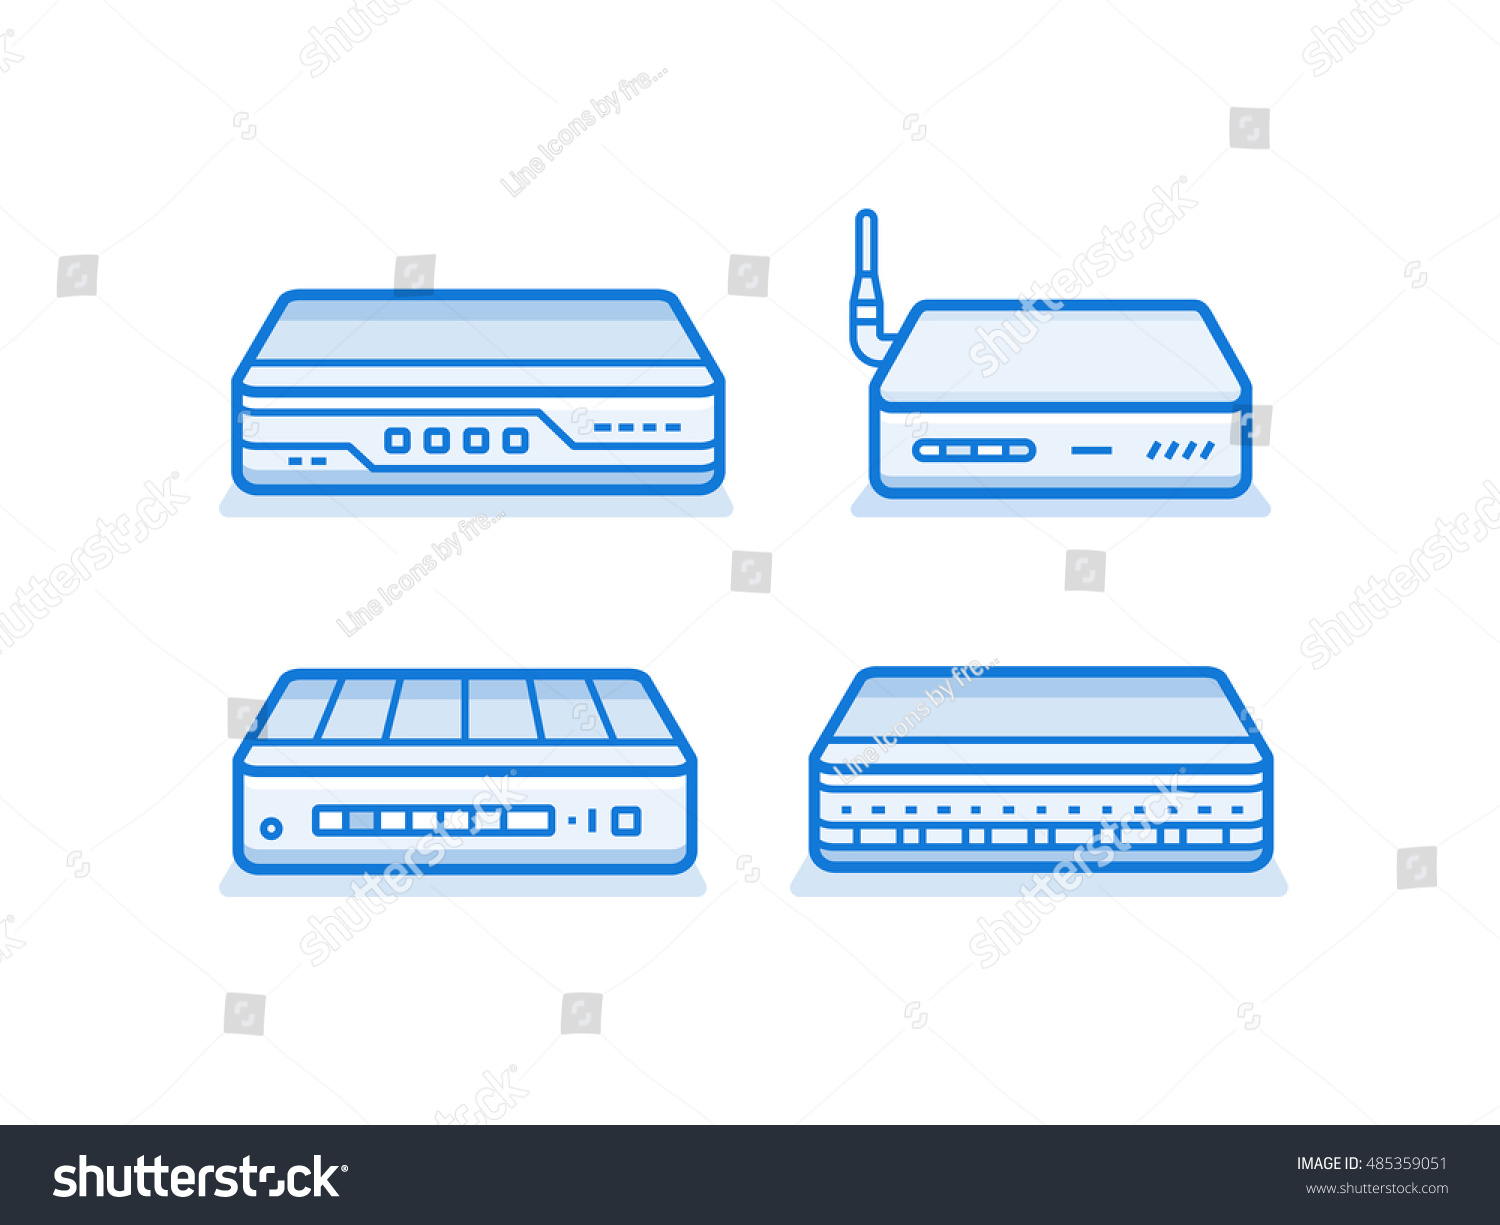 hight resolution of soho network router icon set network equipment for small business data network hardware series